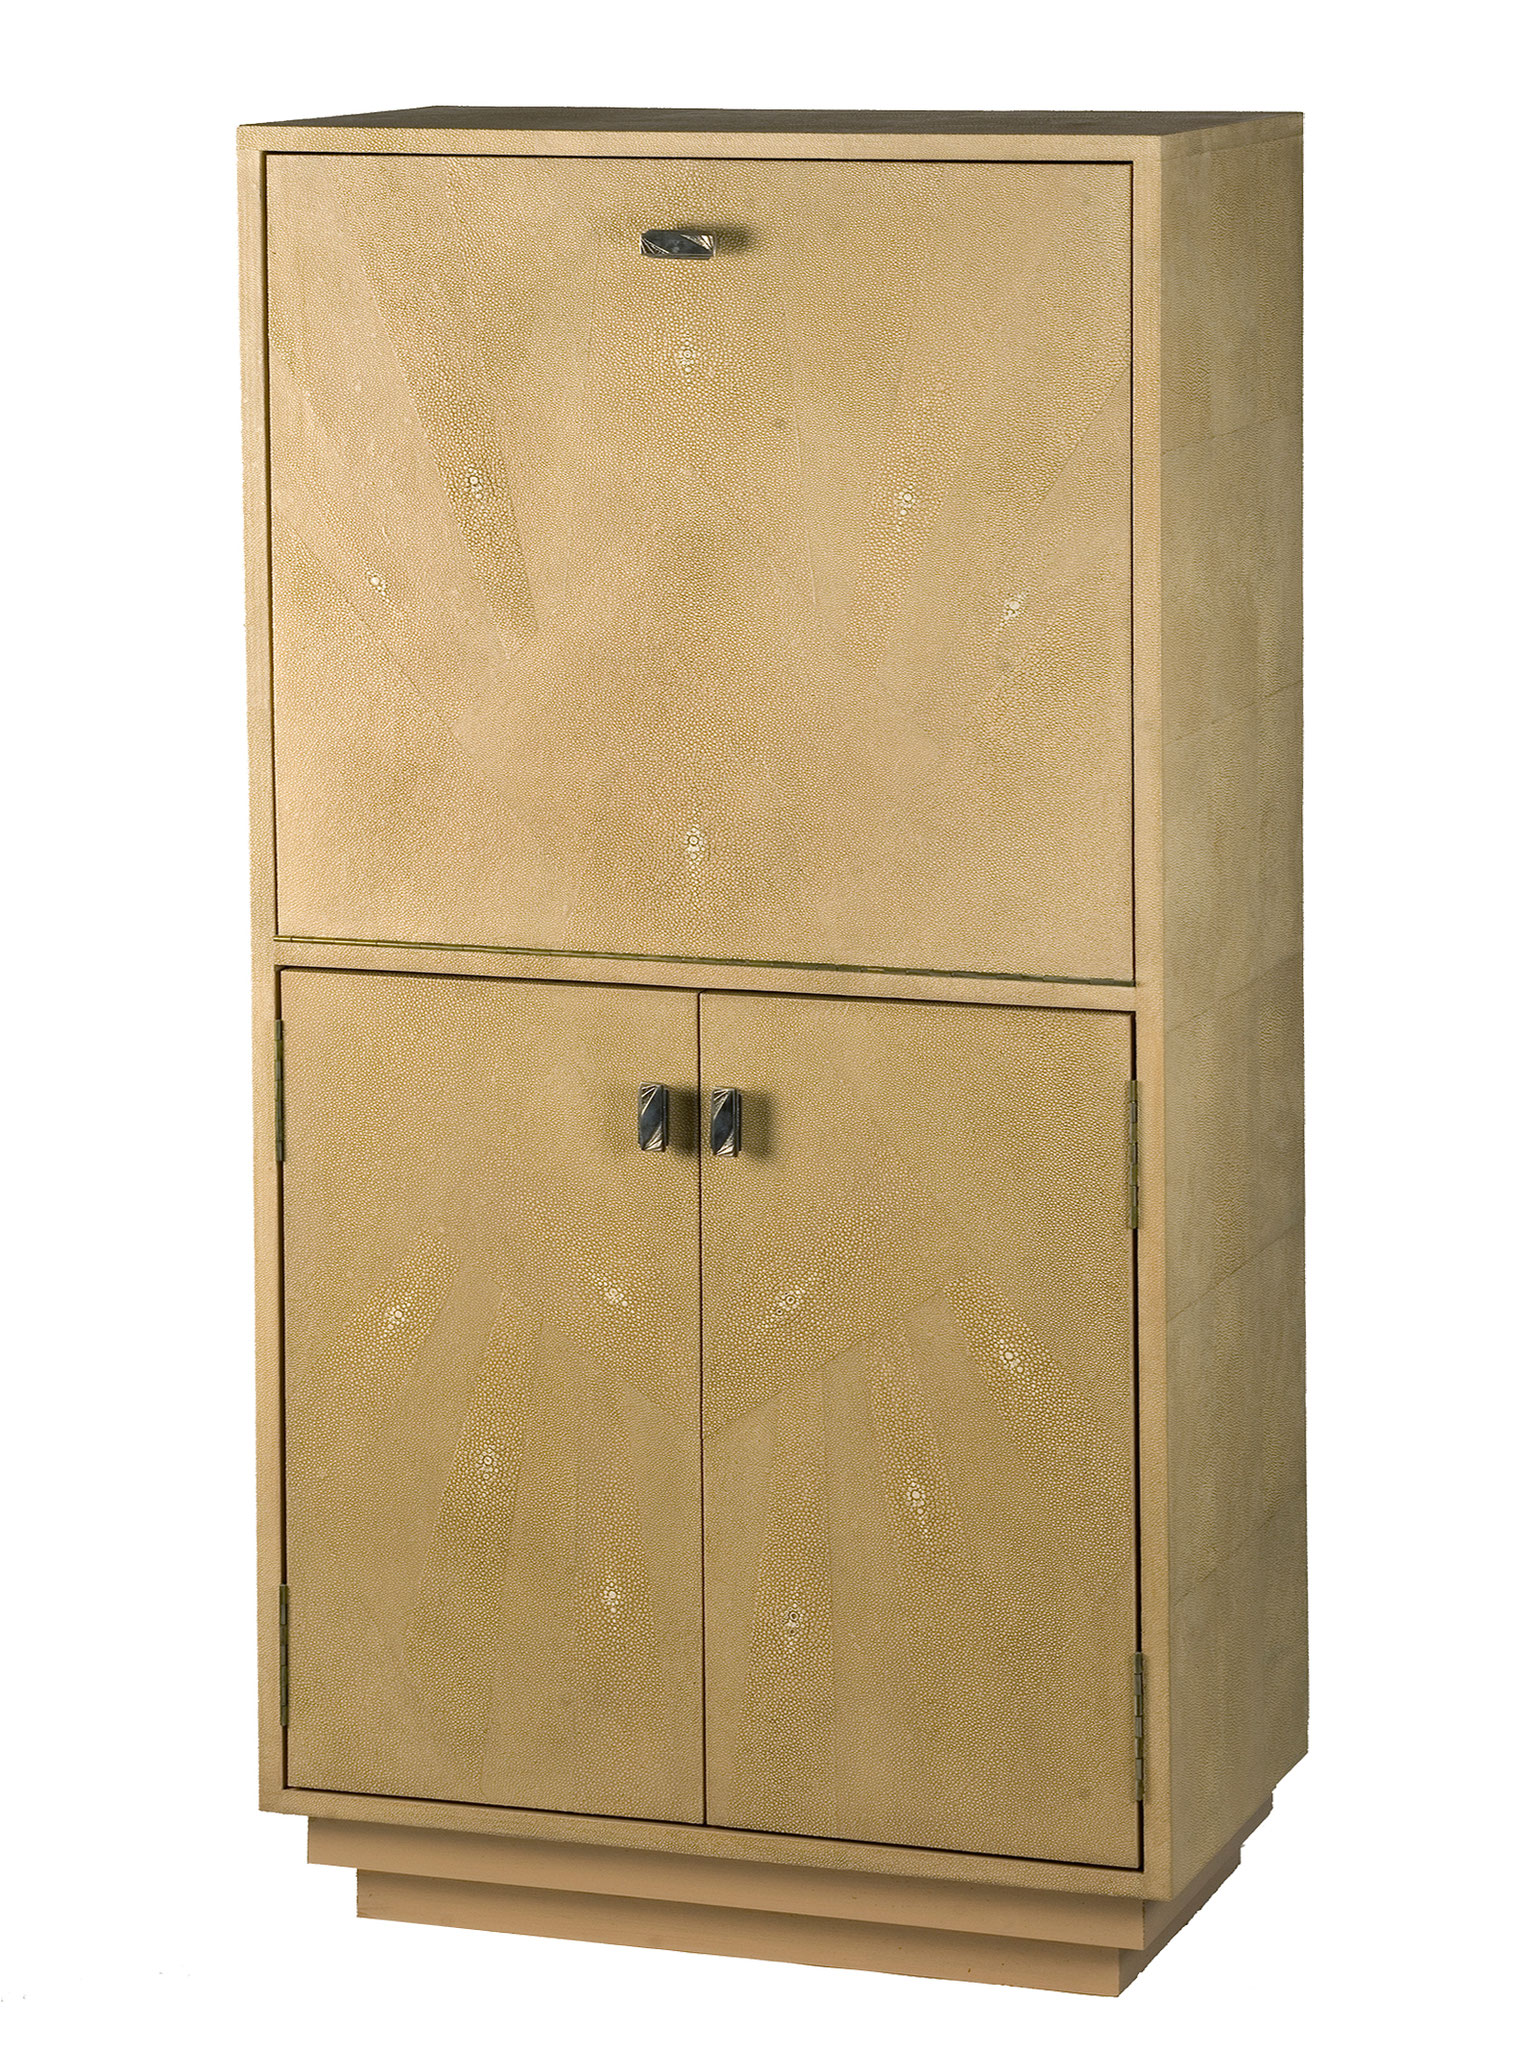 Cupboard covered with faux-shagreen - custom made piece - 130 x 60 x 40 cm